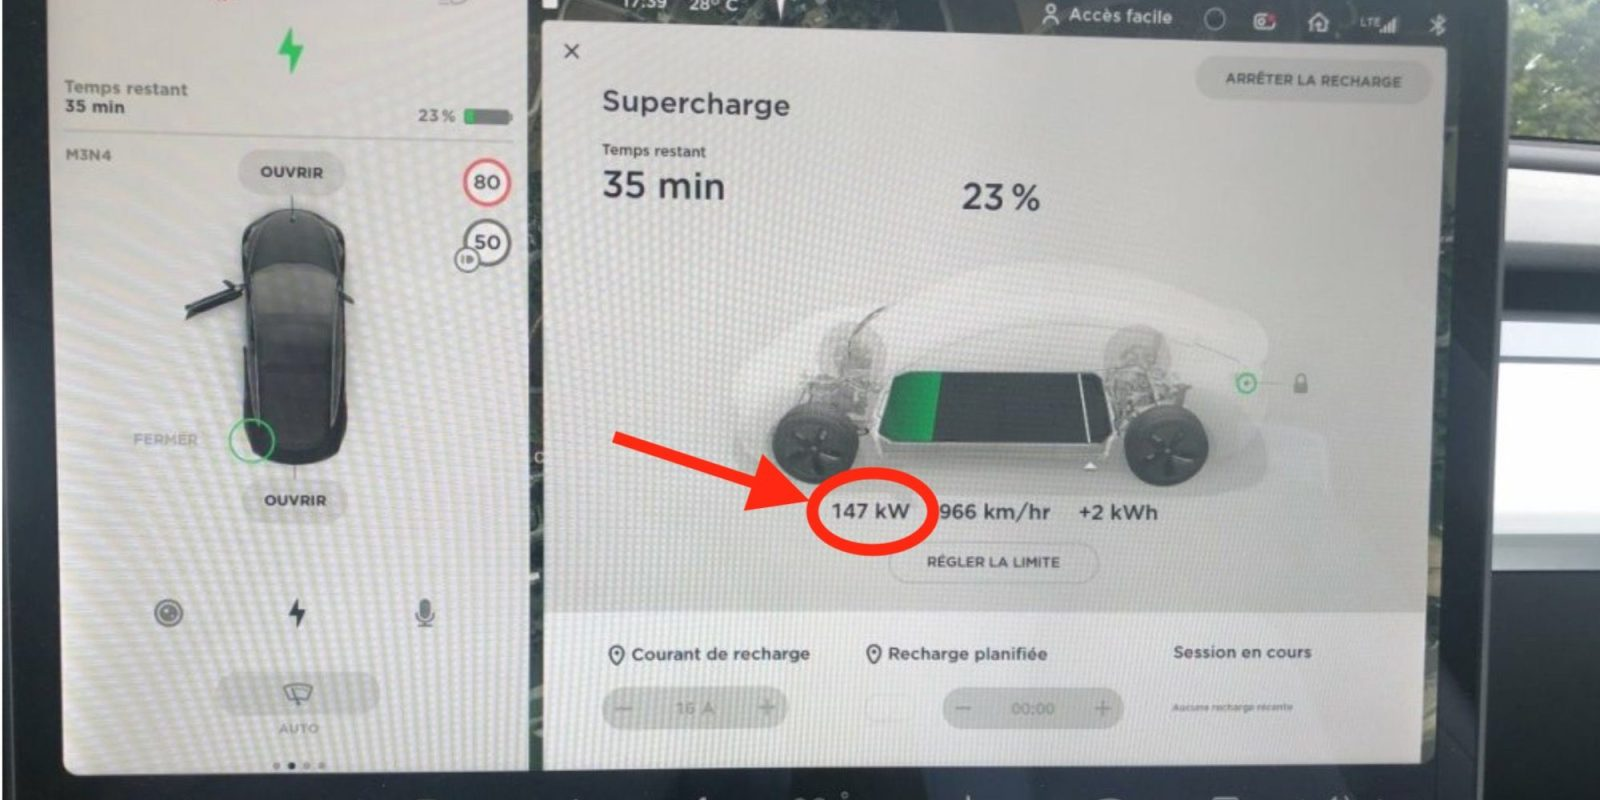 Tesla increases power capacity of Superchargers in Europe